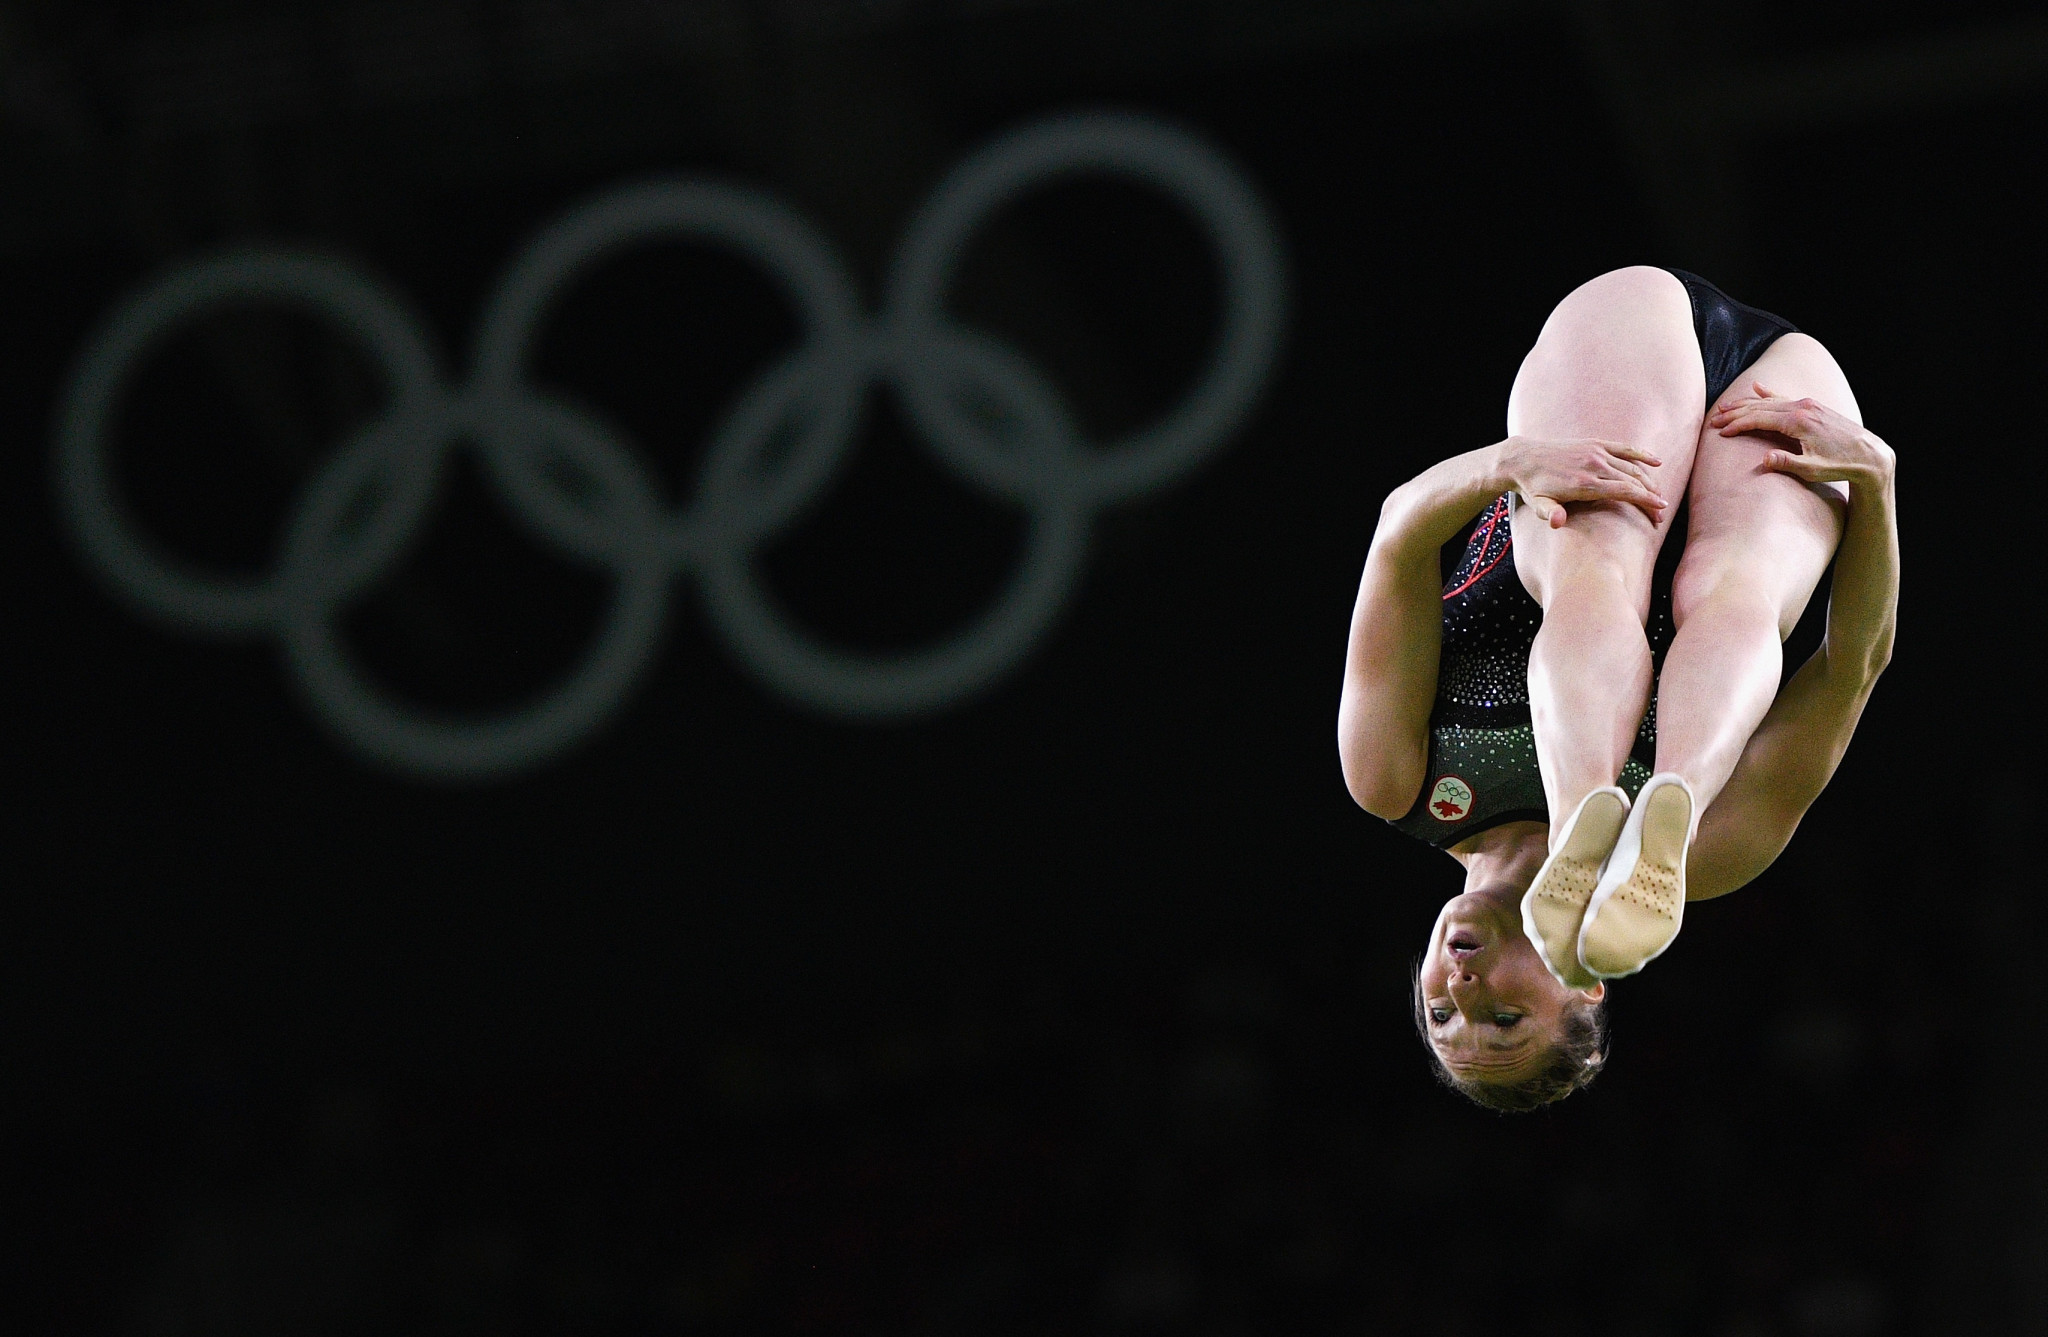 Canada's Rosie MacLennan won the women's trampoline gold medal at the Rio 2016 Olympic Games ©Getty Images